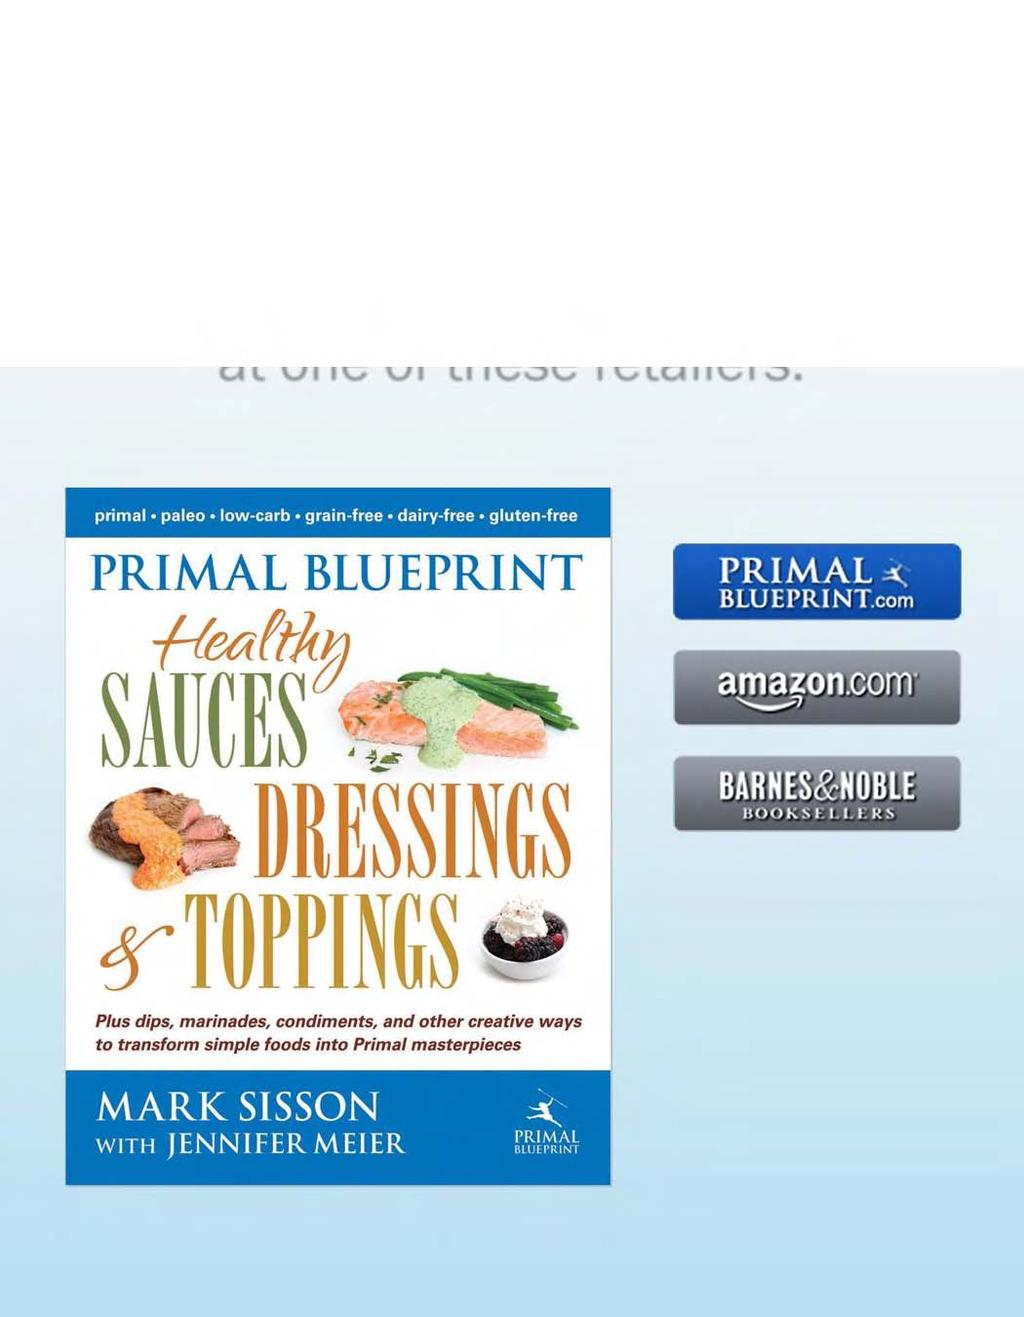 Primal blueprint healthy sauces dressings toppings with 46 primal blueprint healthy sauces dressings toppings 49 malvernweather Images